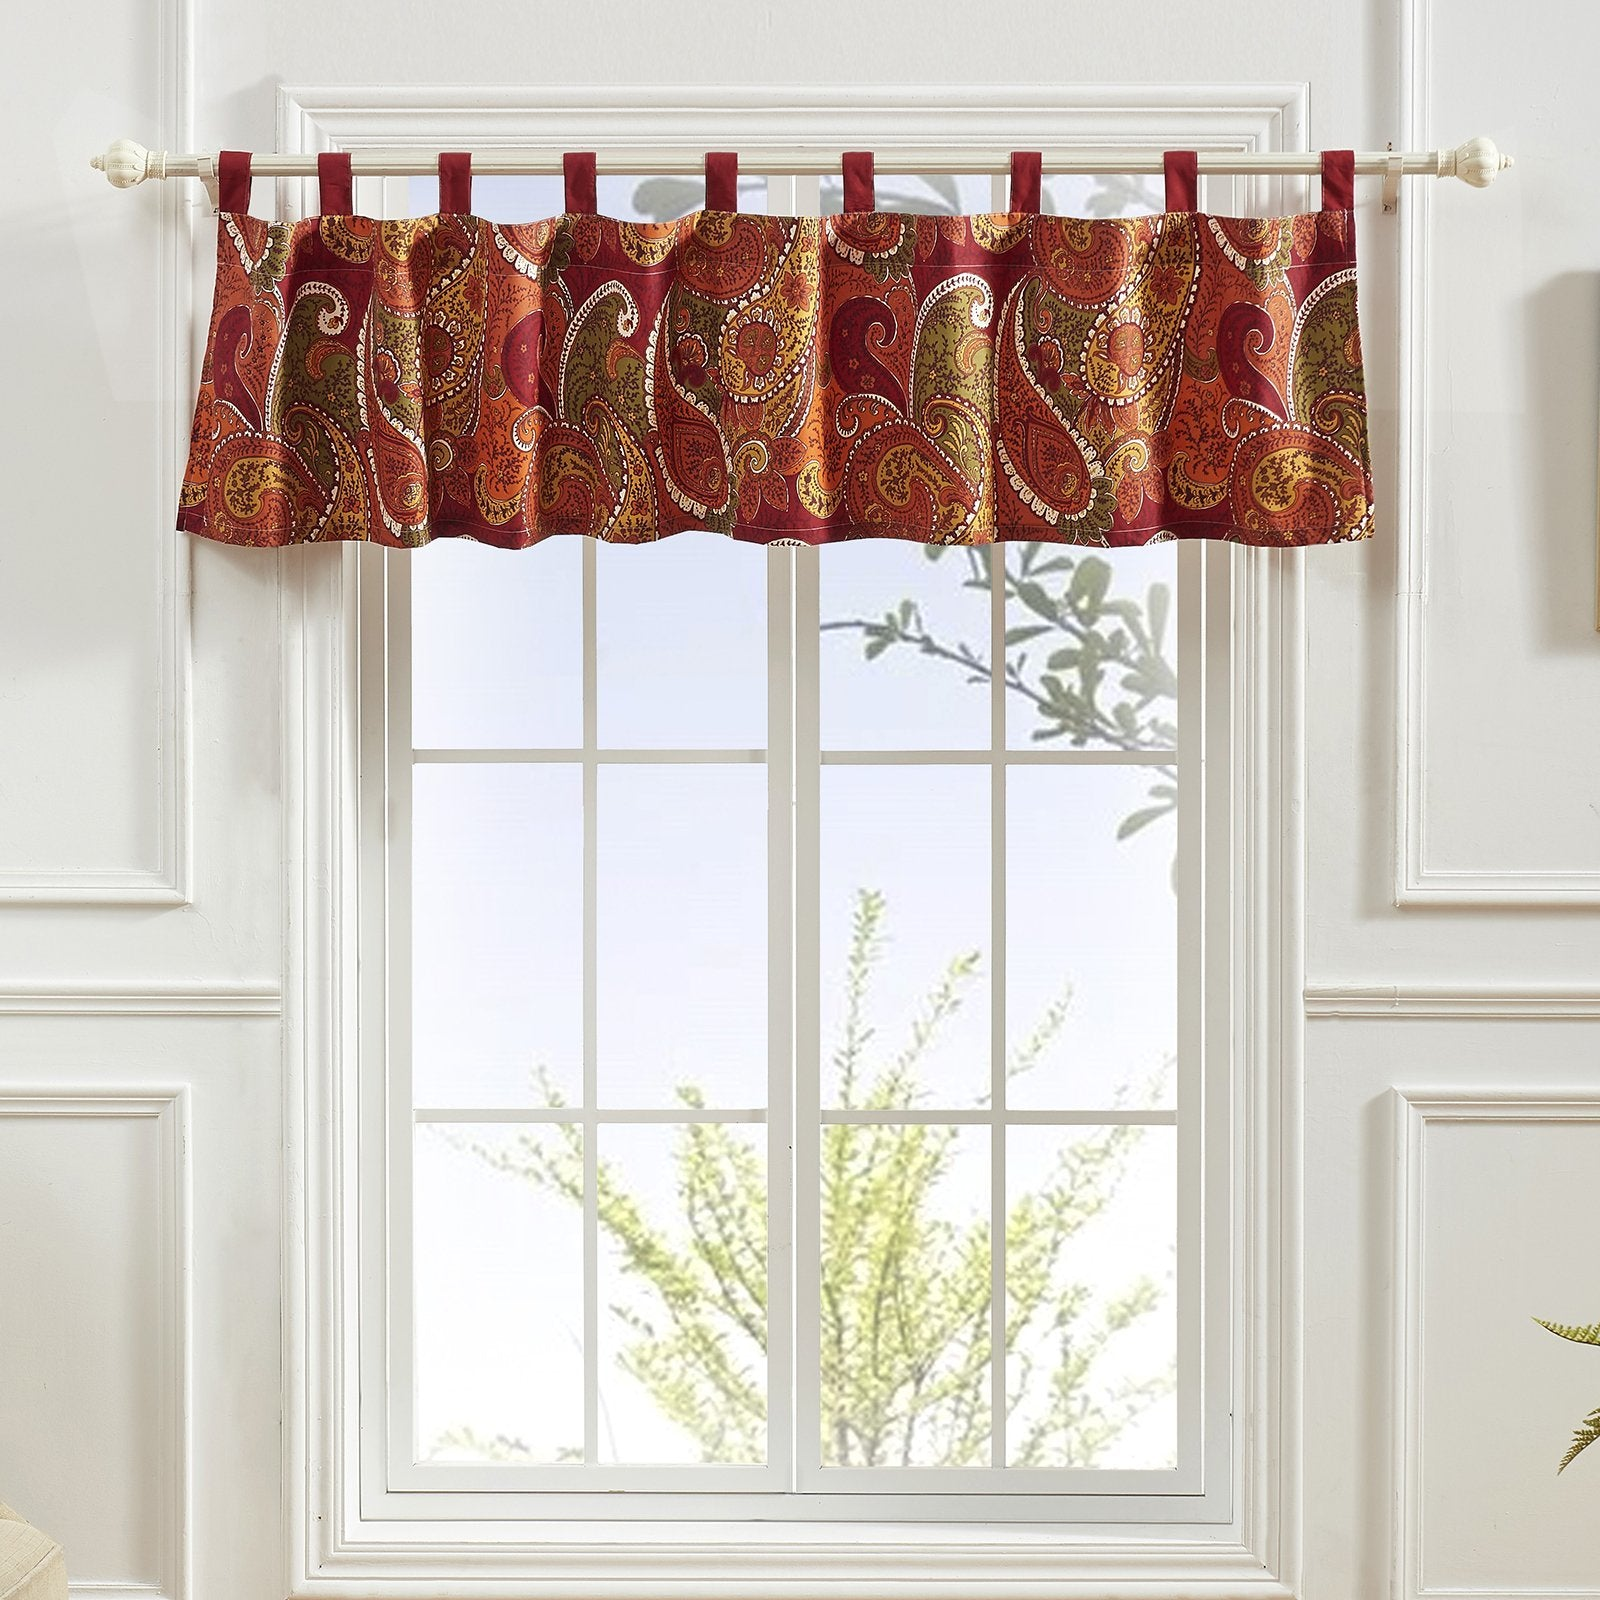 Tivoli Cinnamon Window Valance [Luxury comforter Sets] [by Latest Bedding]